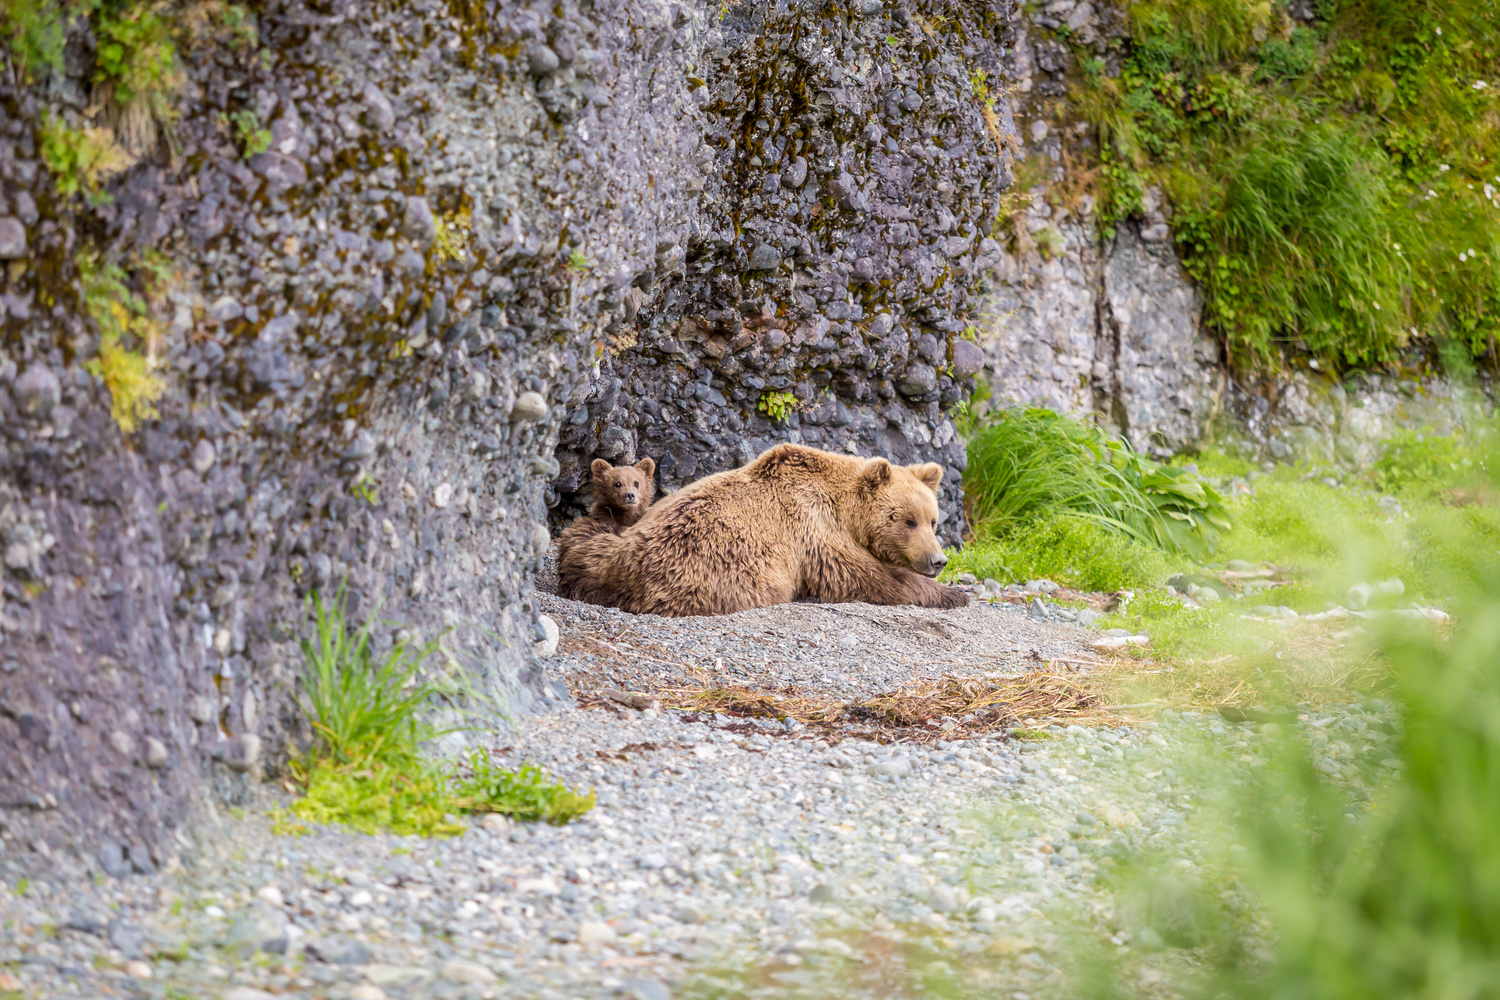 Mama bear and cub napping by Daniel Wise